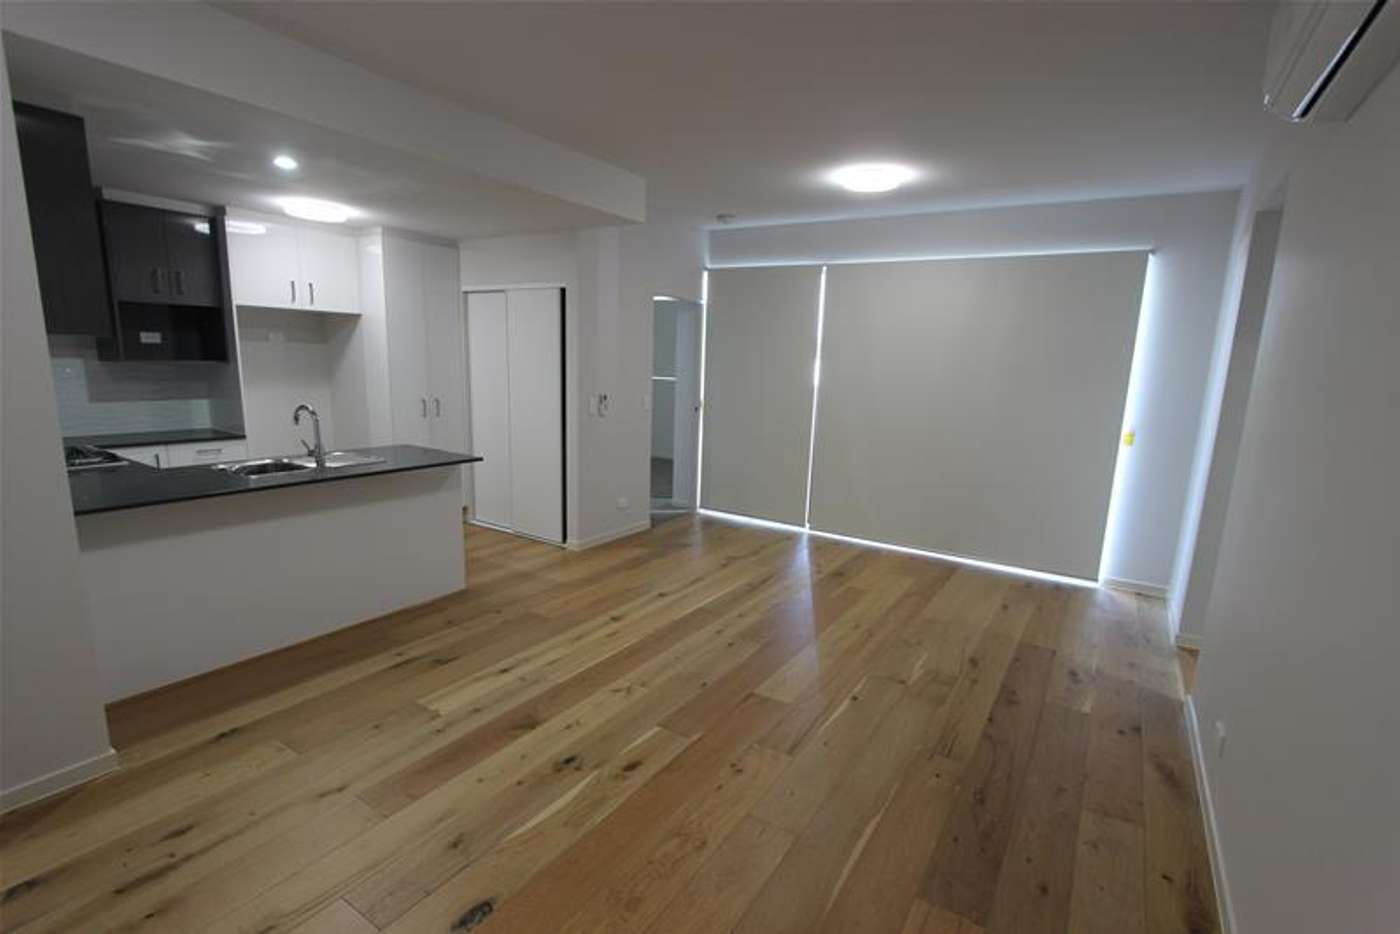 Sixth view of Homely apartment listing, 403/28-32 Cartwright Street, Windsor QLD 4030